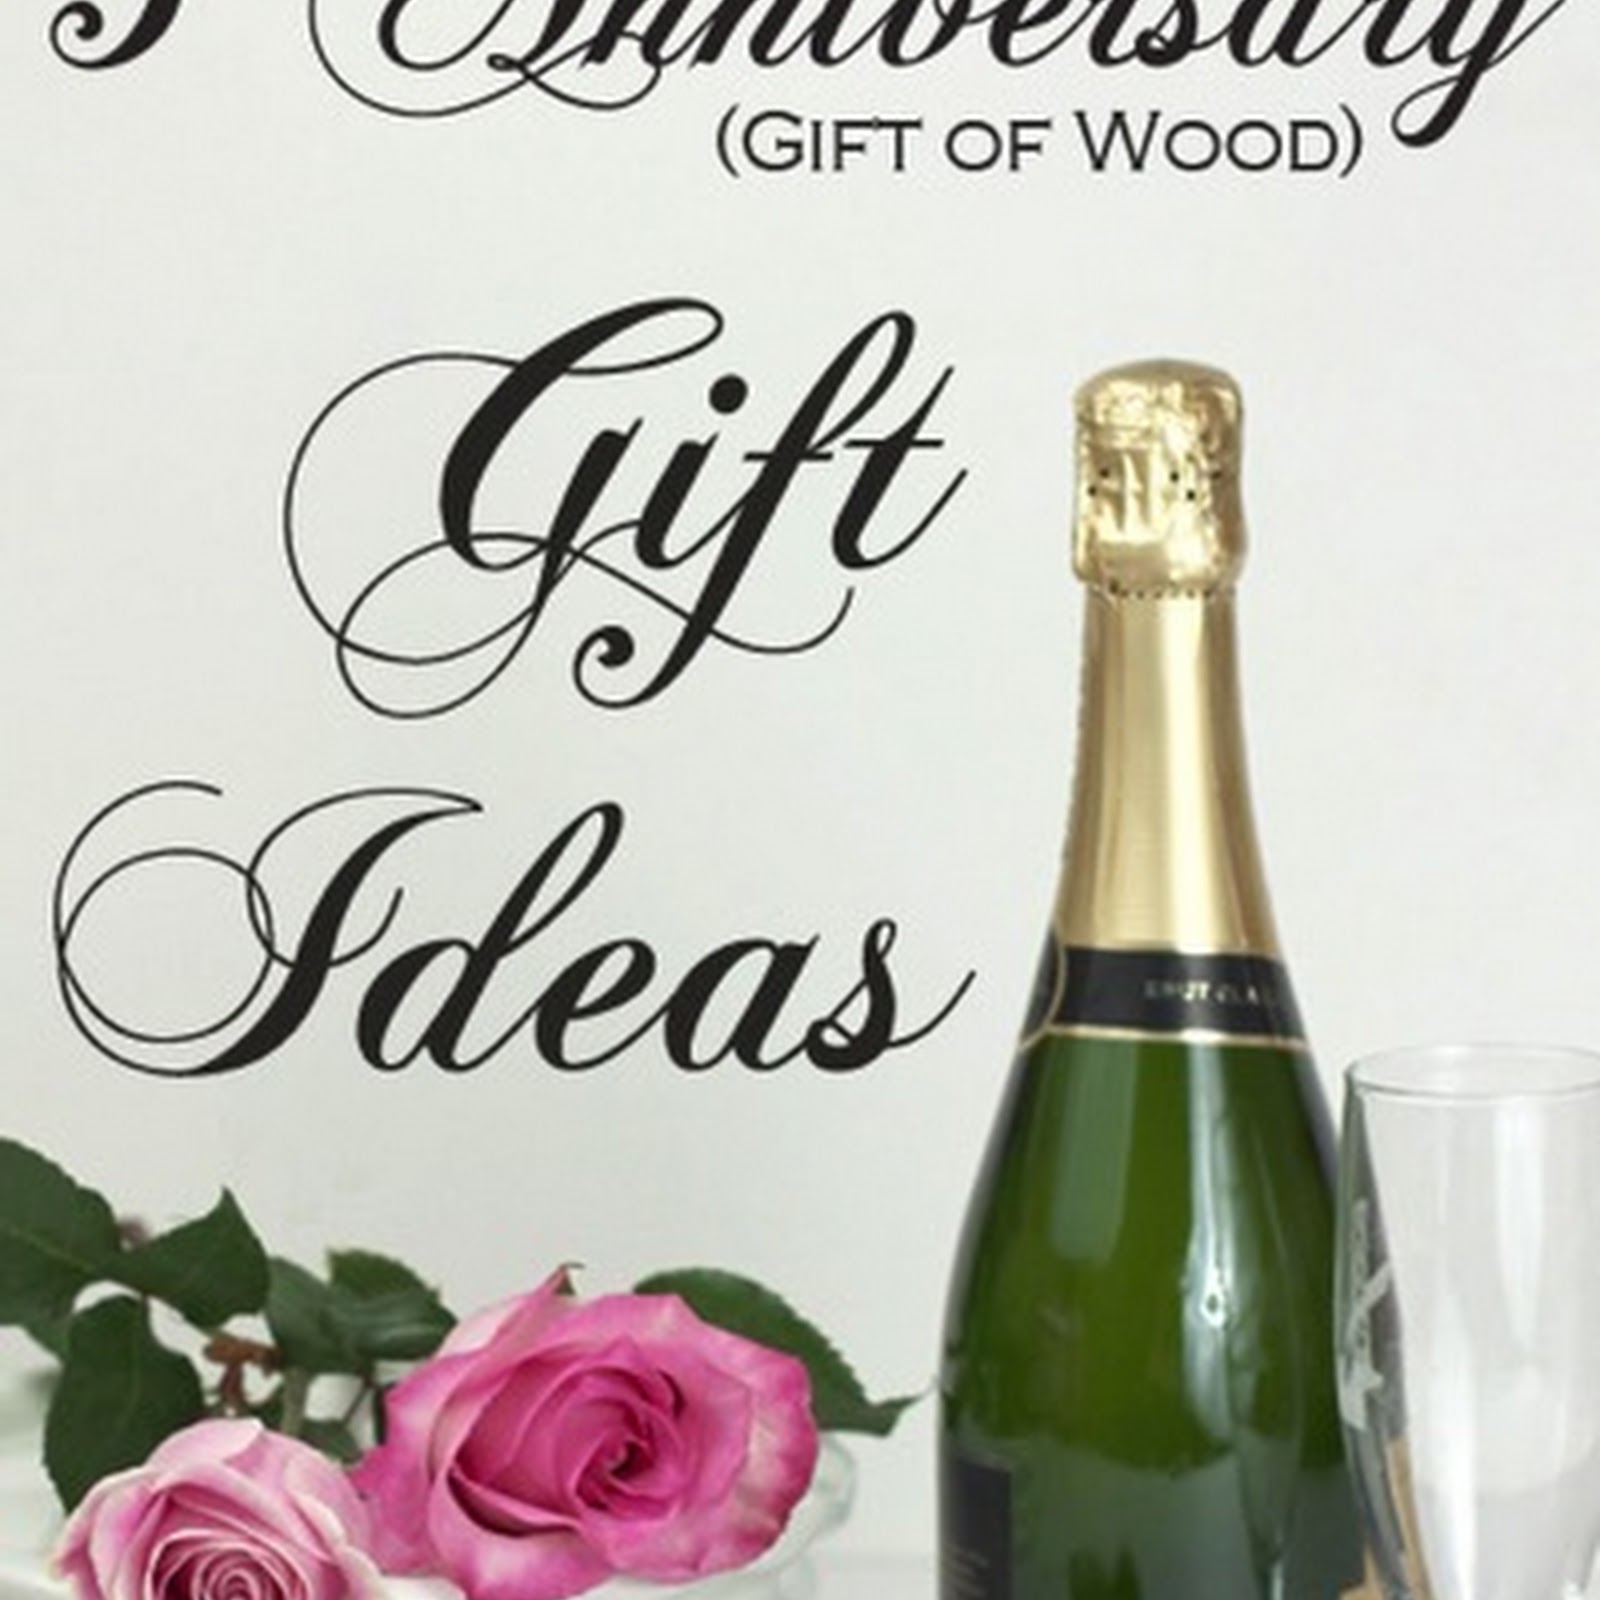 5th Anniversary (Gift of Wood) Gift Ideas